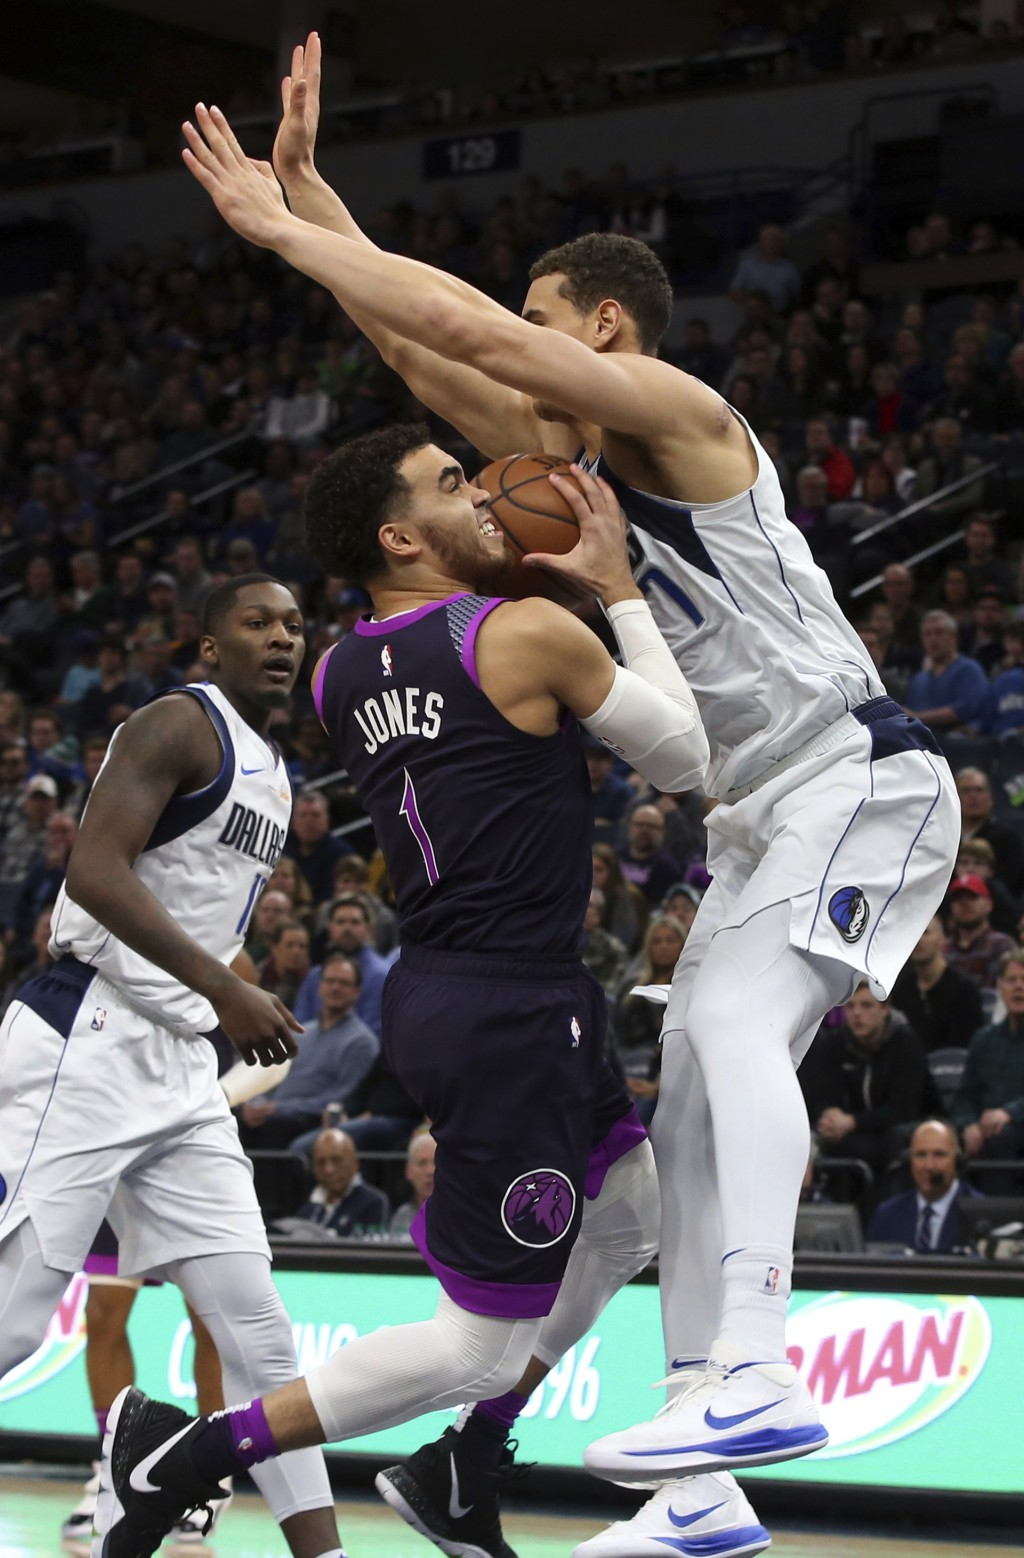 Minnesota Timberwolves' Tyus Jones, left, eyes the basket as Dallas Mavericks' Luka Doncic, of Slovenia, hovers over him in the first half of an NBA b